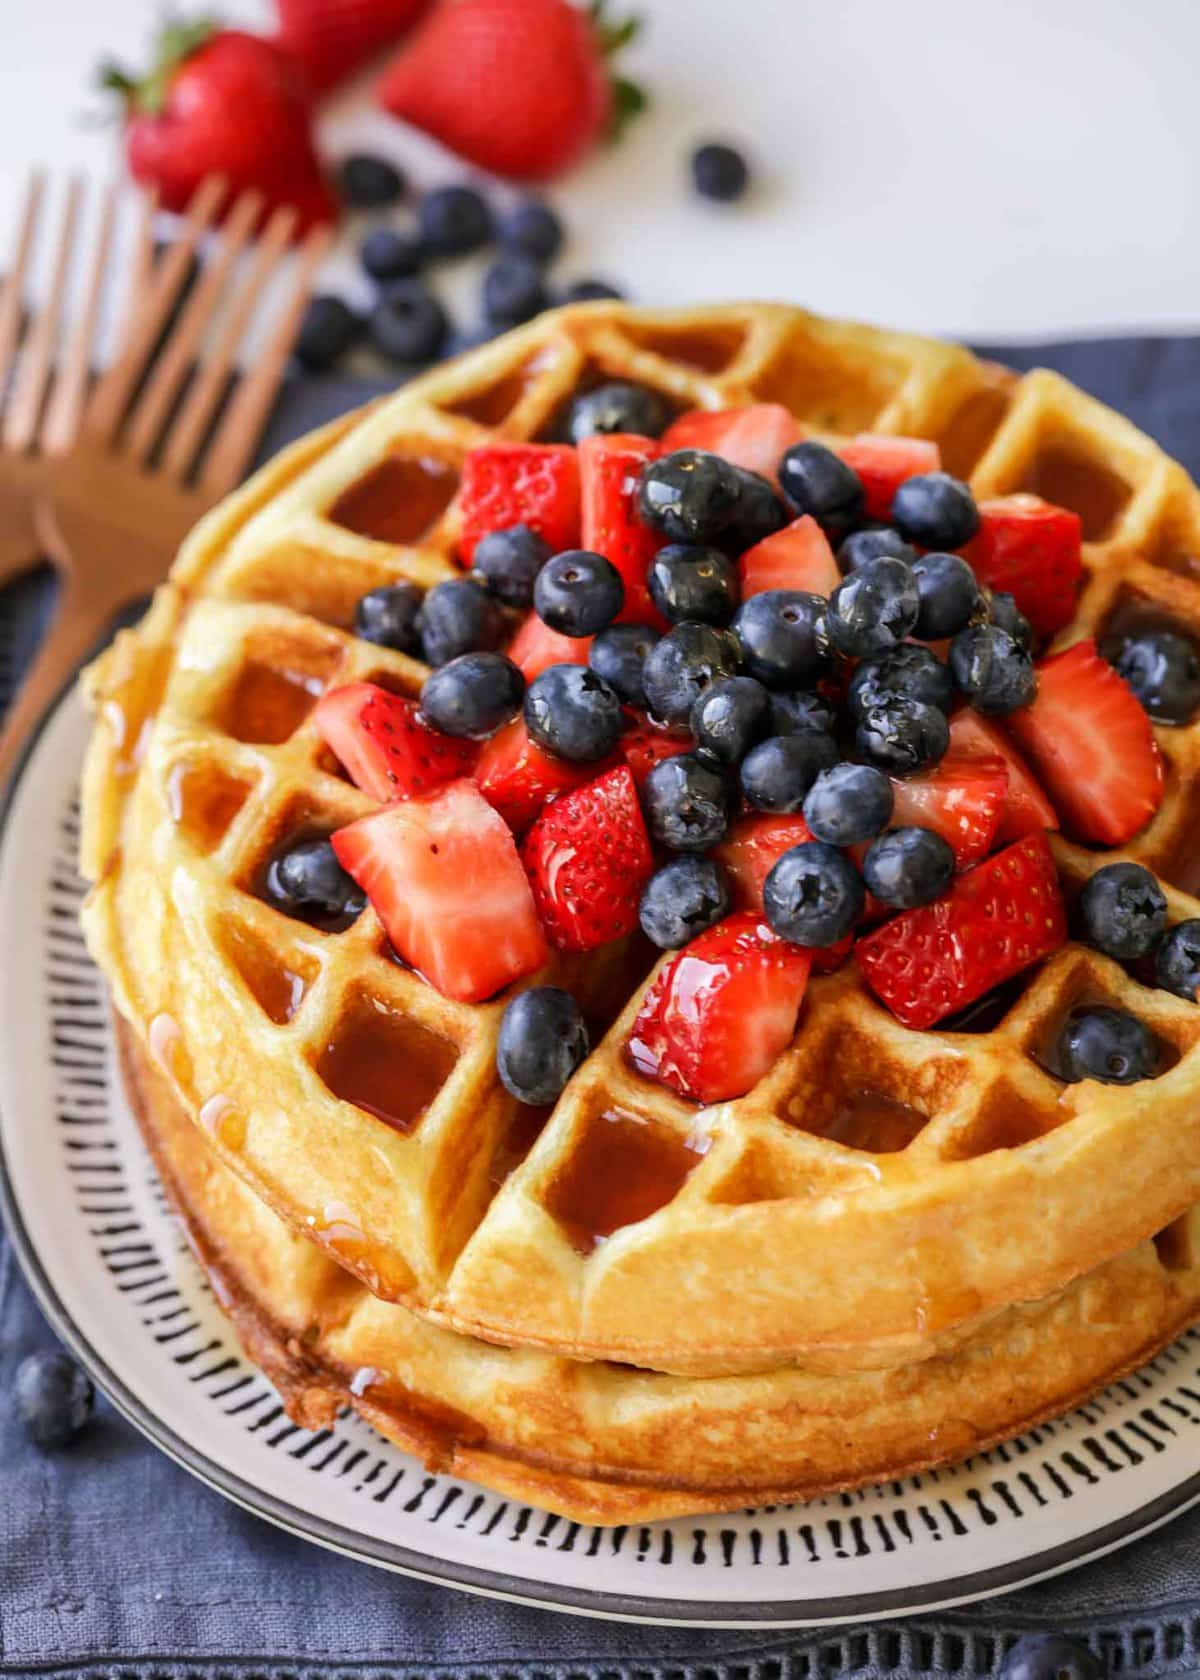 homemade buttermilk waffle topped with berries and syrup